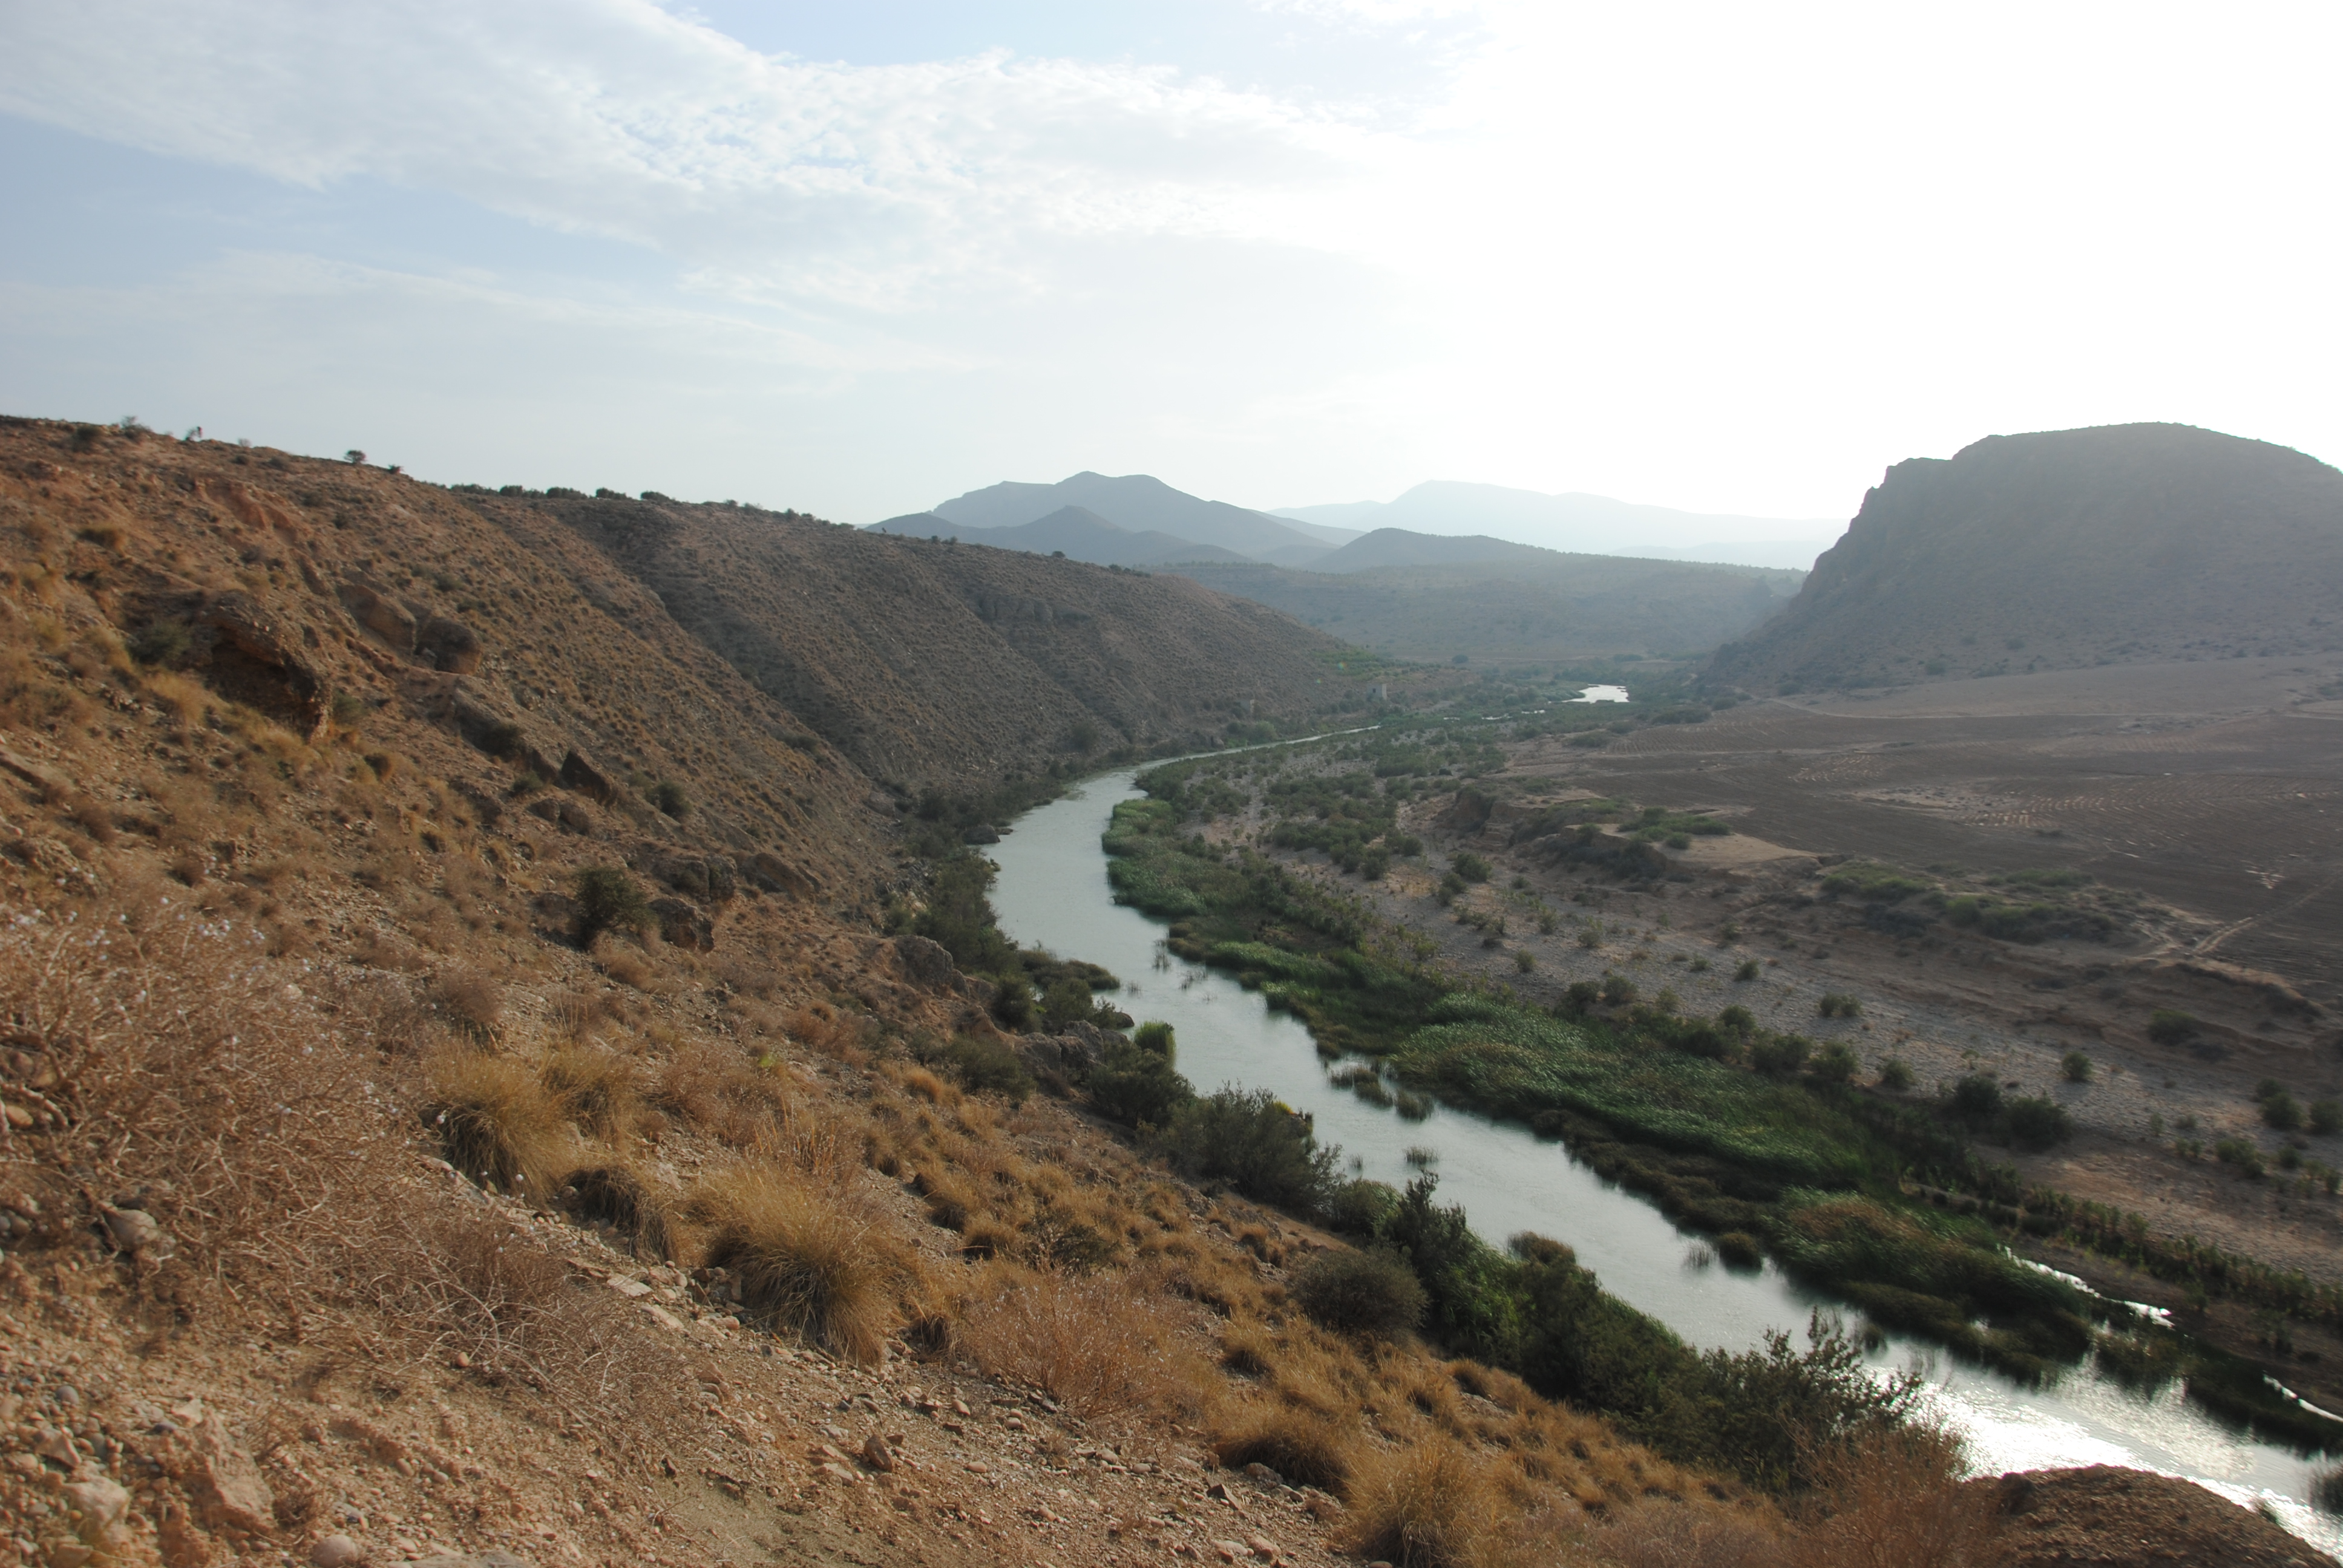 Lower Moulouya river in northeast Morocco. Picture: Melanie Bartz